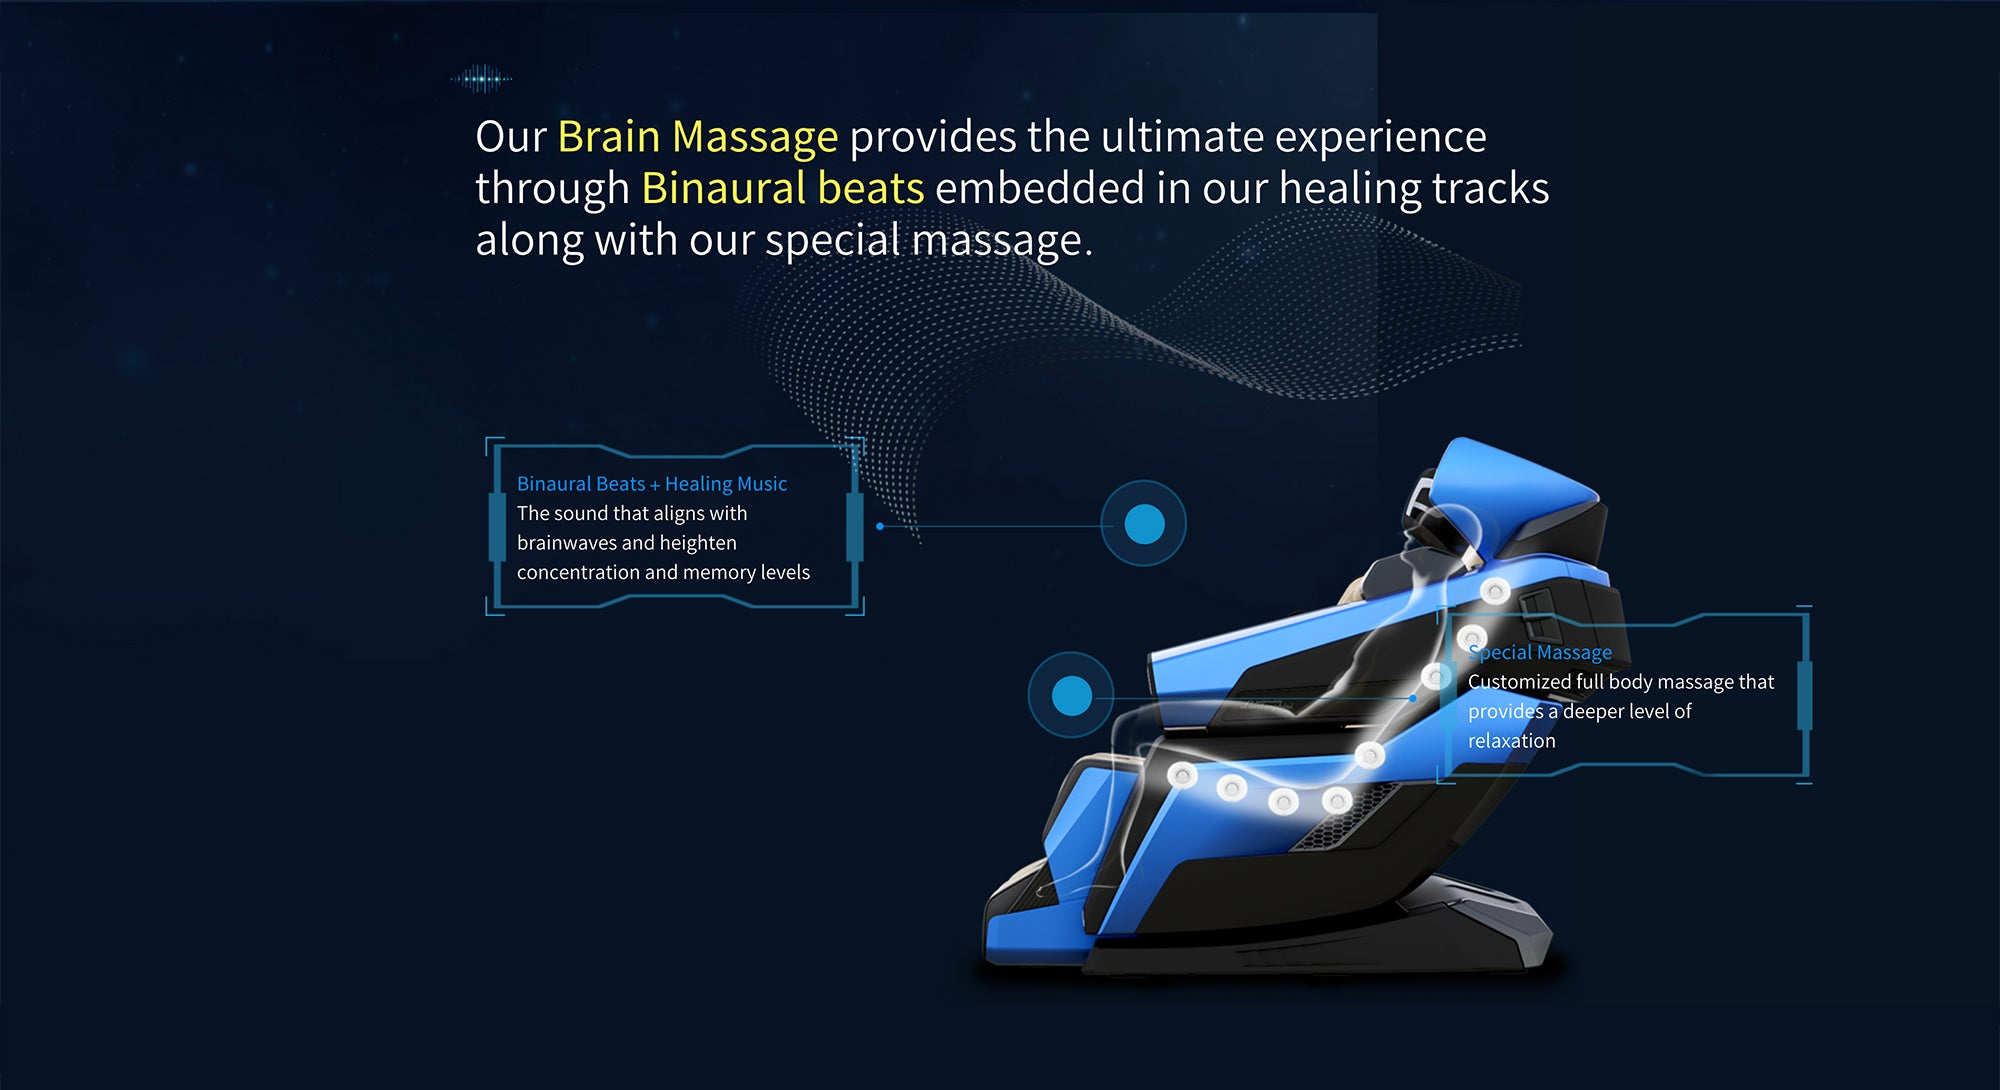 Our Brain Massage Provides The Ultimate Experience Through Binaural Beats